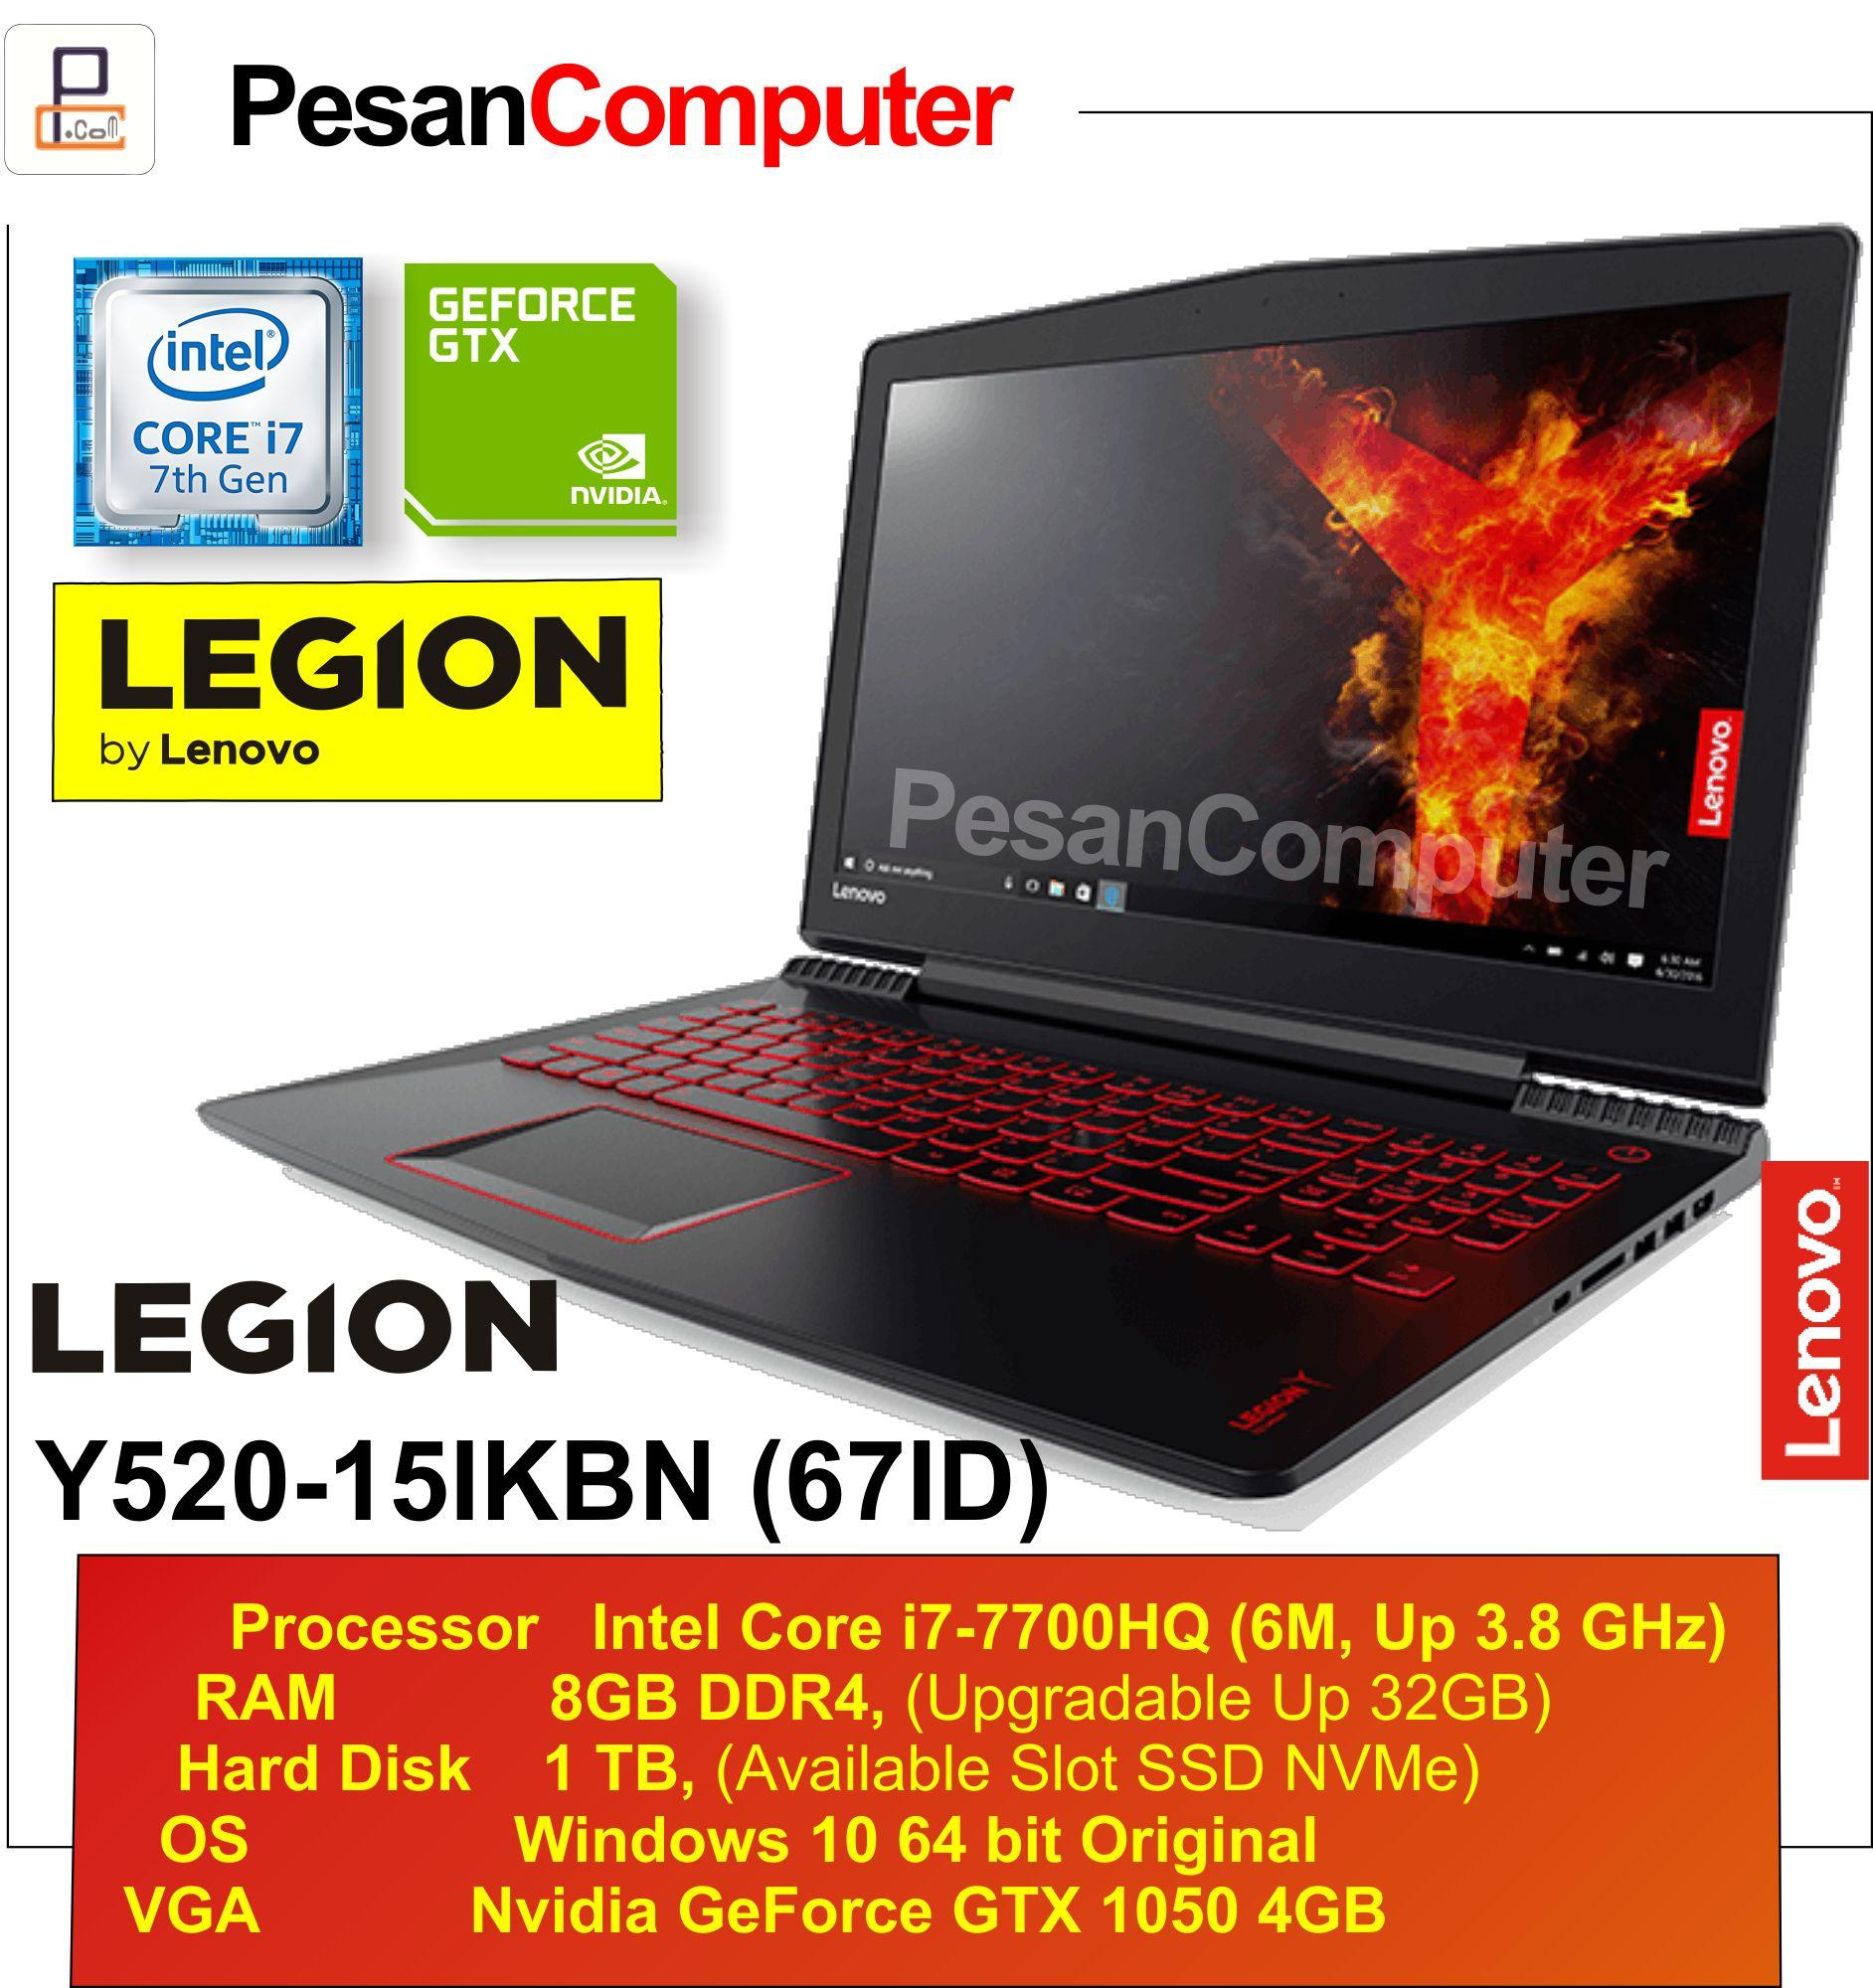 Lenovo Legion Y520 -15IKBN 67ID Intel Core i7 -7700HQ RAM 8GB HDD 1TB NVIDIA